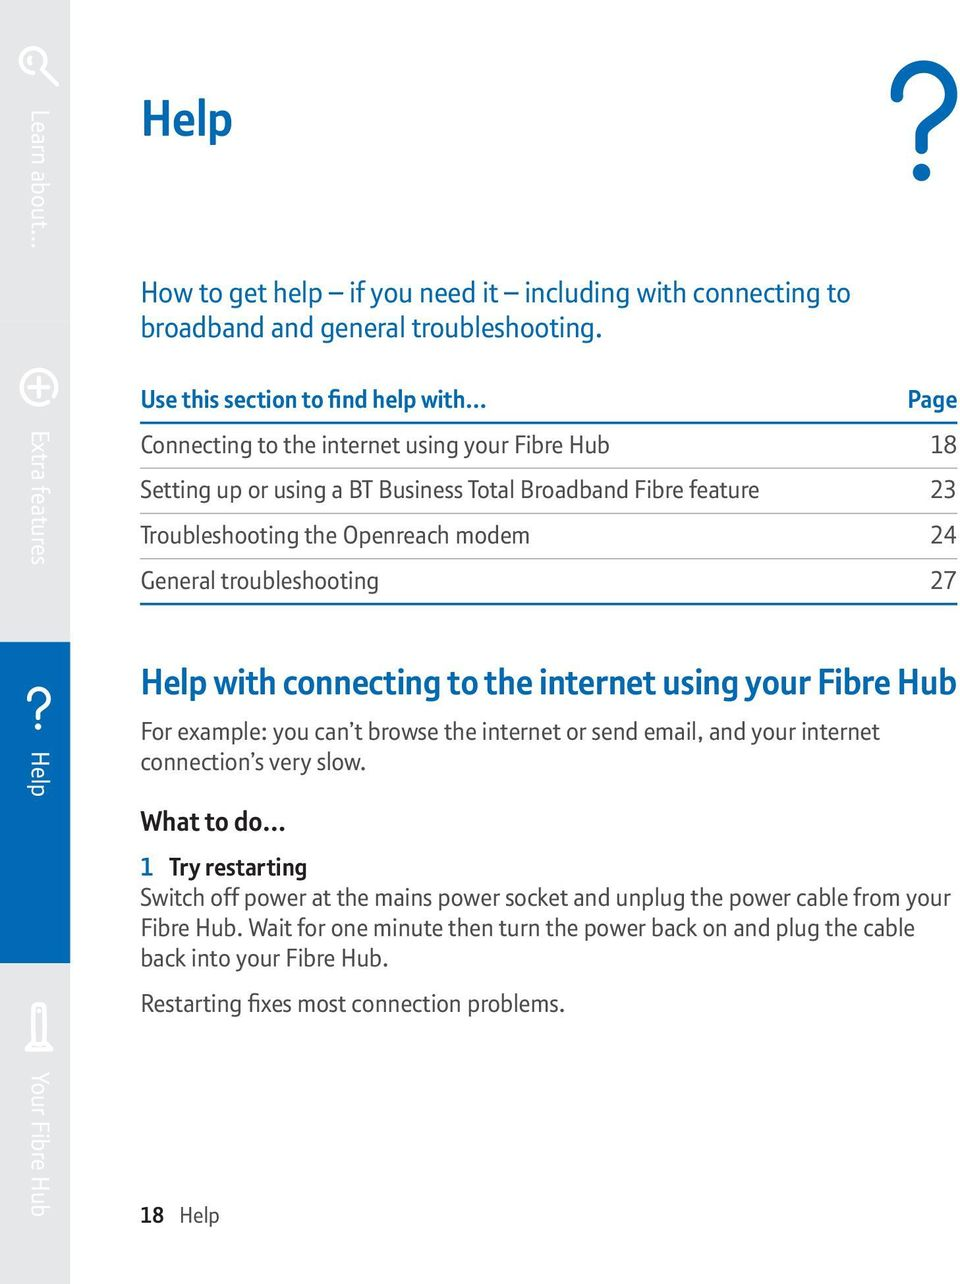 Openreach modem 24 General troubleshooting 27 Help with connecting to the internet using your Fibre Hub For example: you can t browse the internet or send email, and your internet